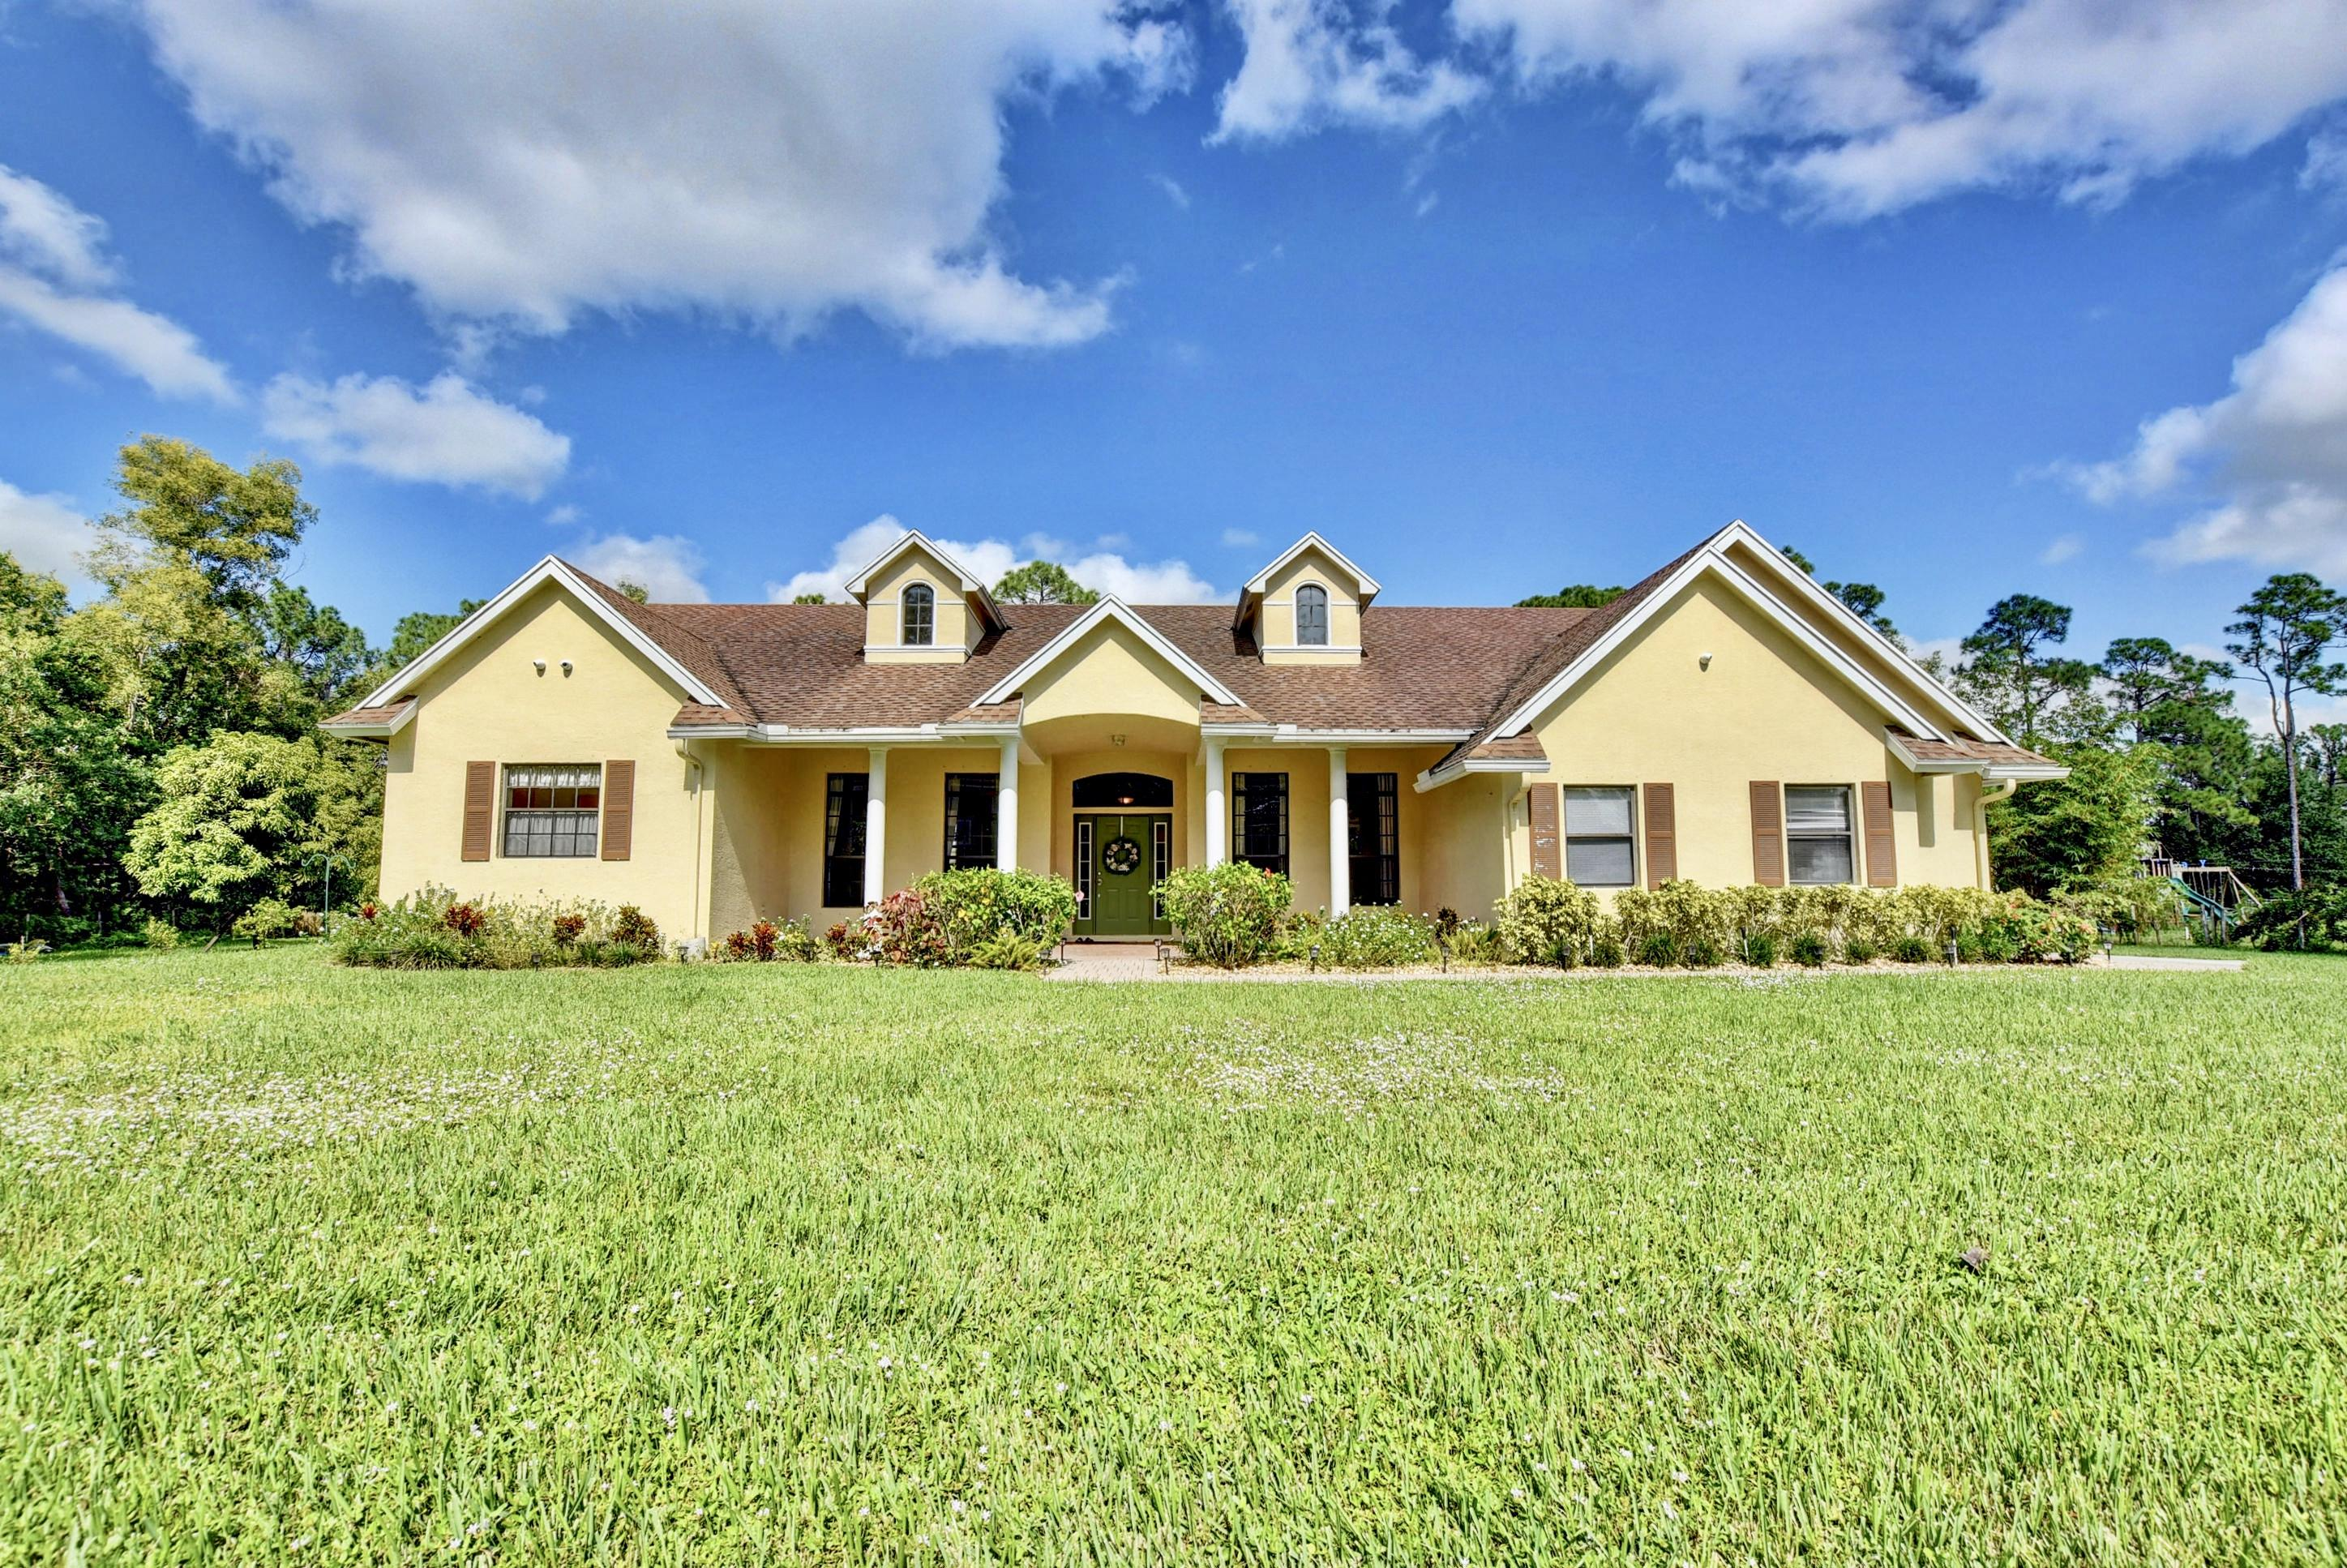 Home for sale in The Acreage/ Unincorporated Loxahatchee Florida